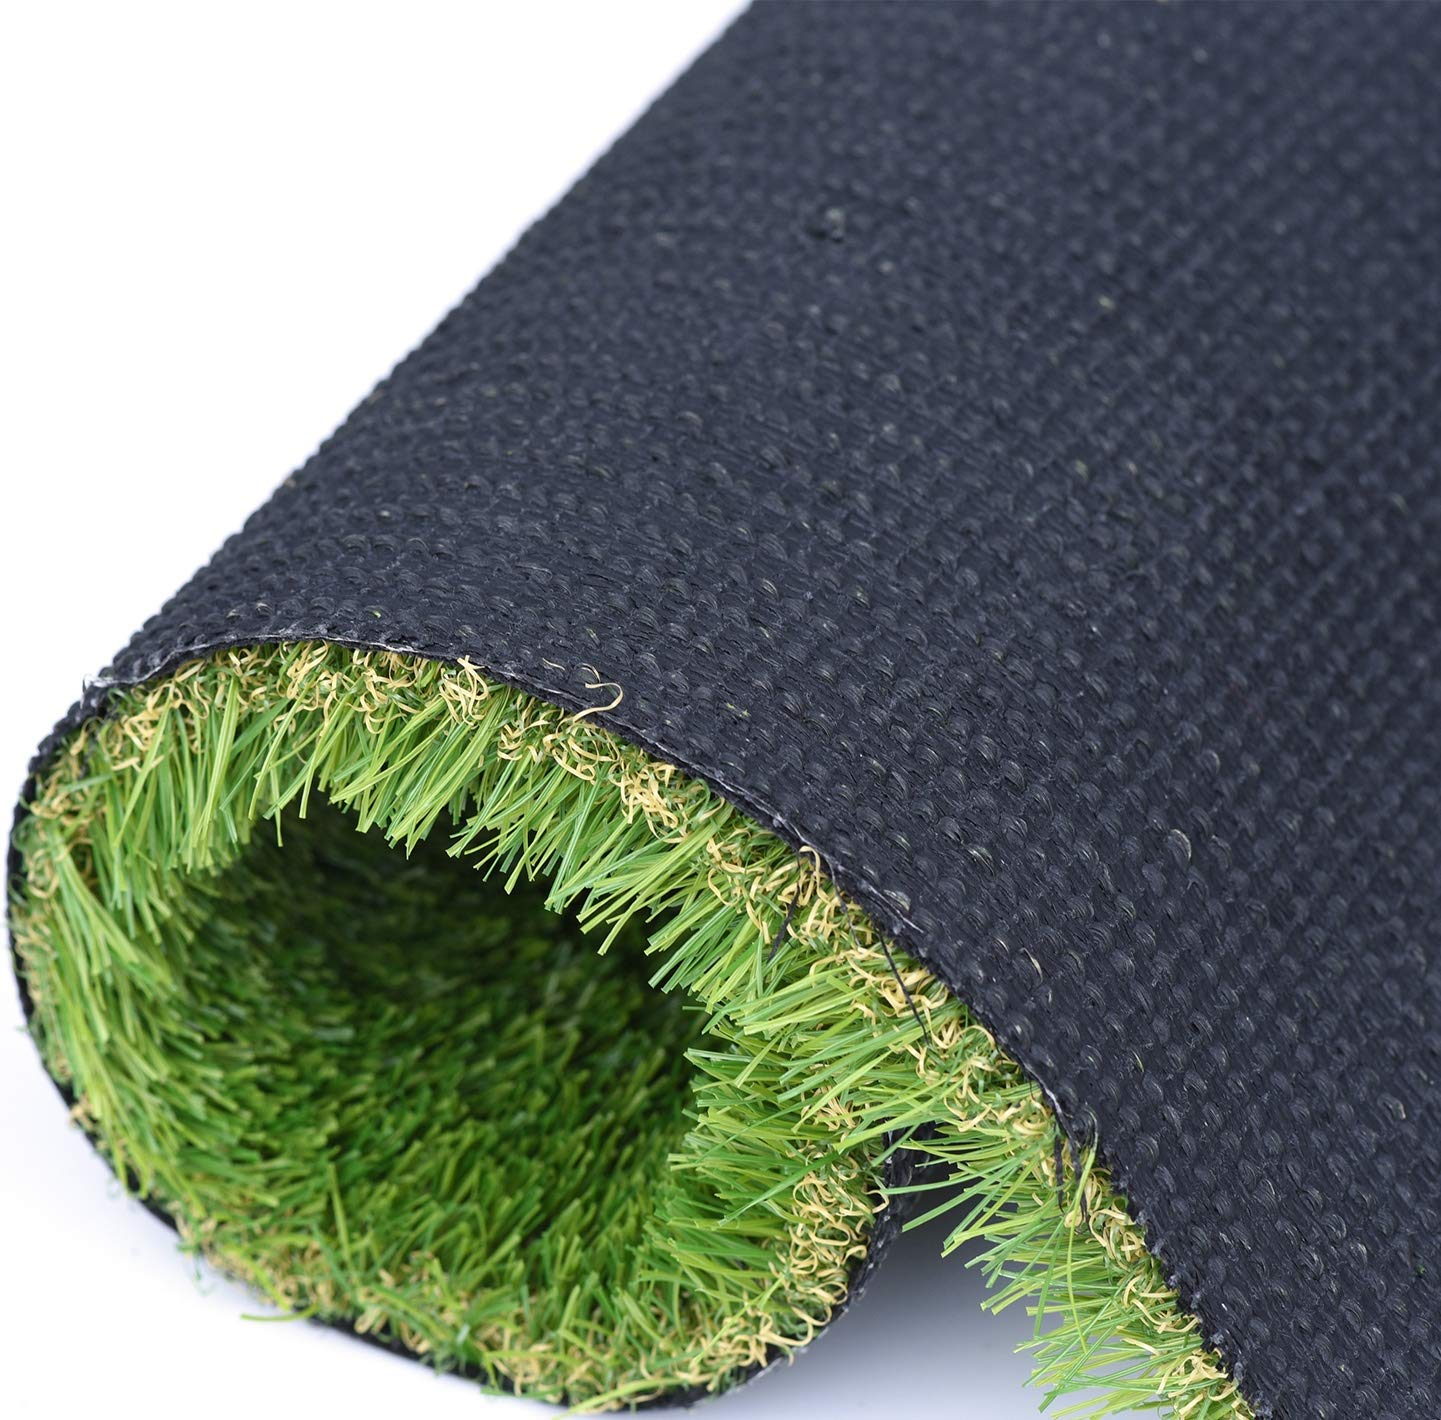 RoundLove Artificial Turf Lawn Fake Grass Indoor Outdoor Landscape Pet Dog Area (40X80 in) by RoundLove